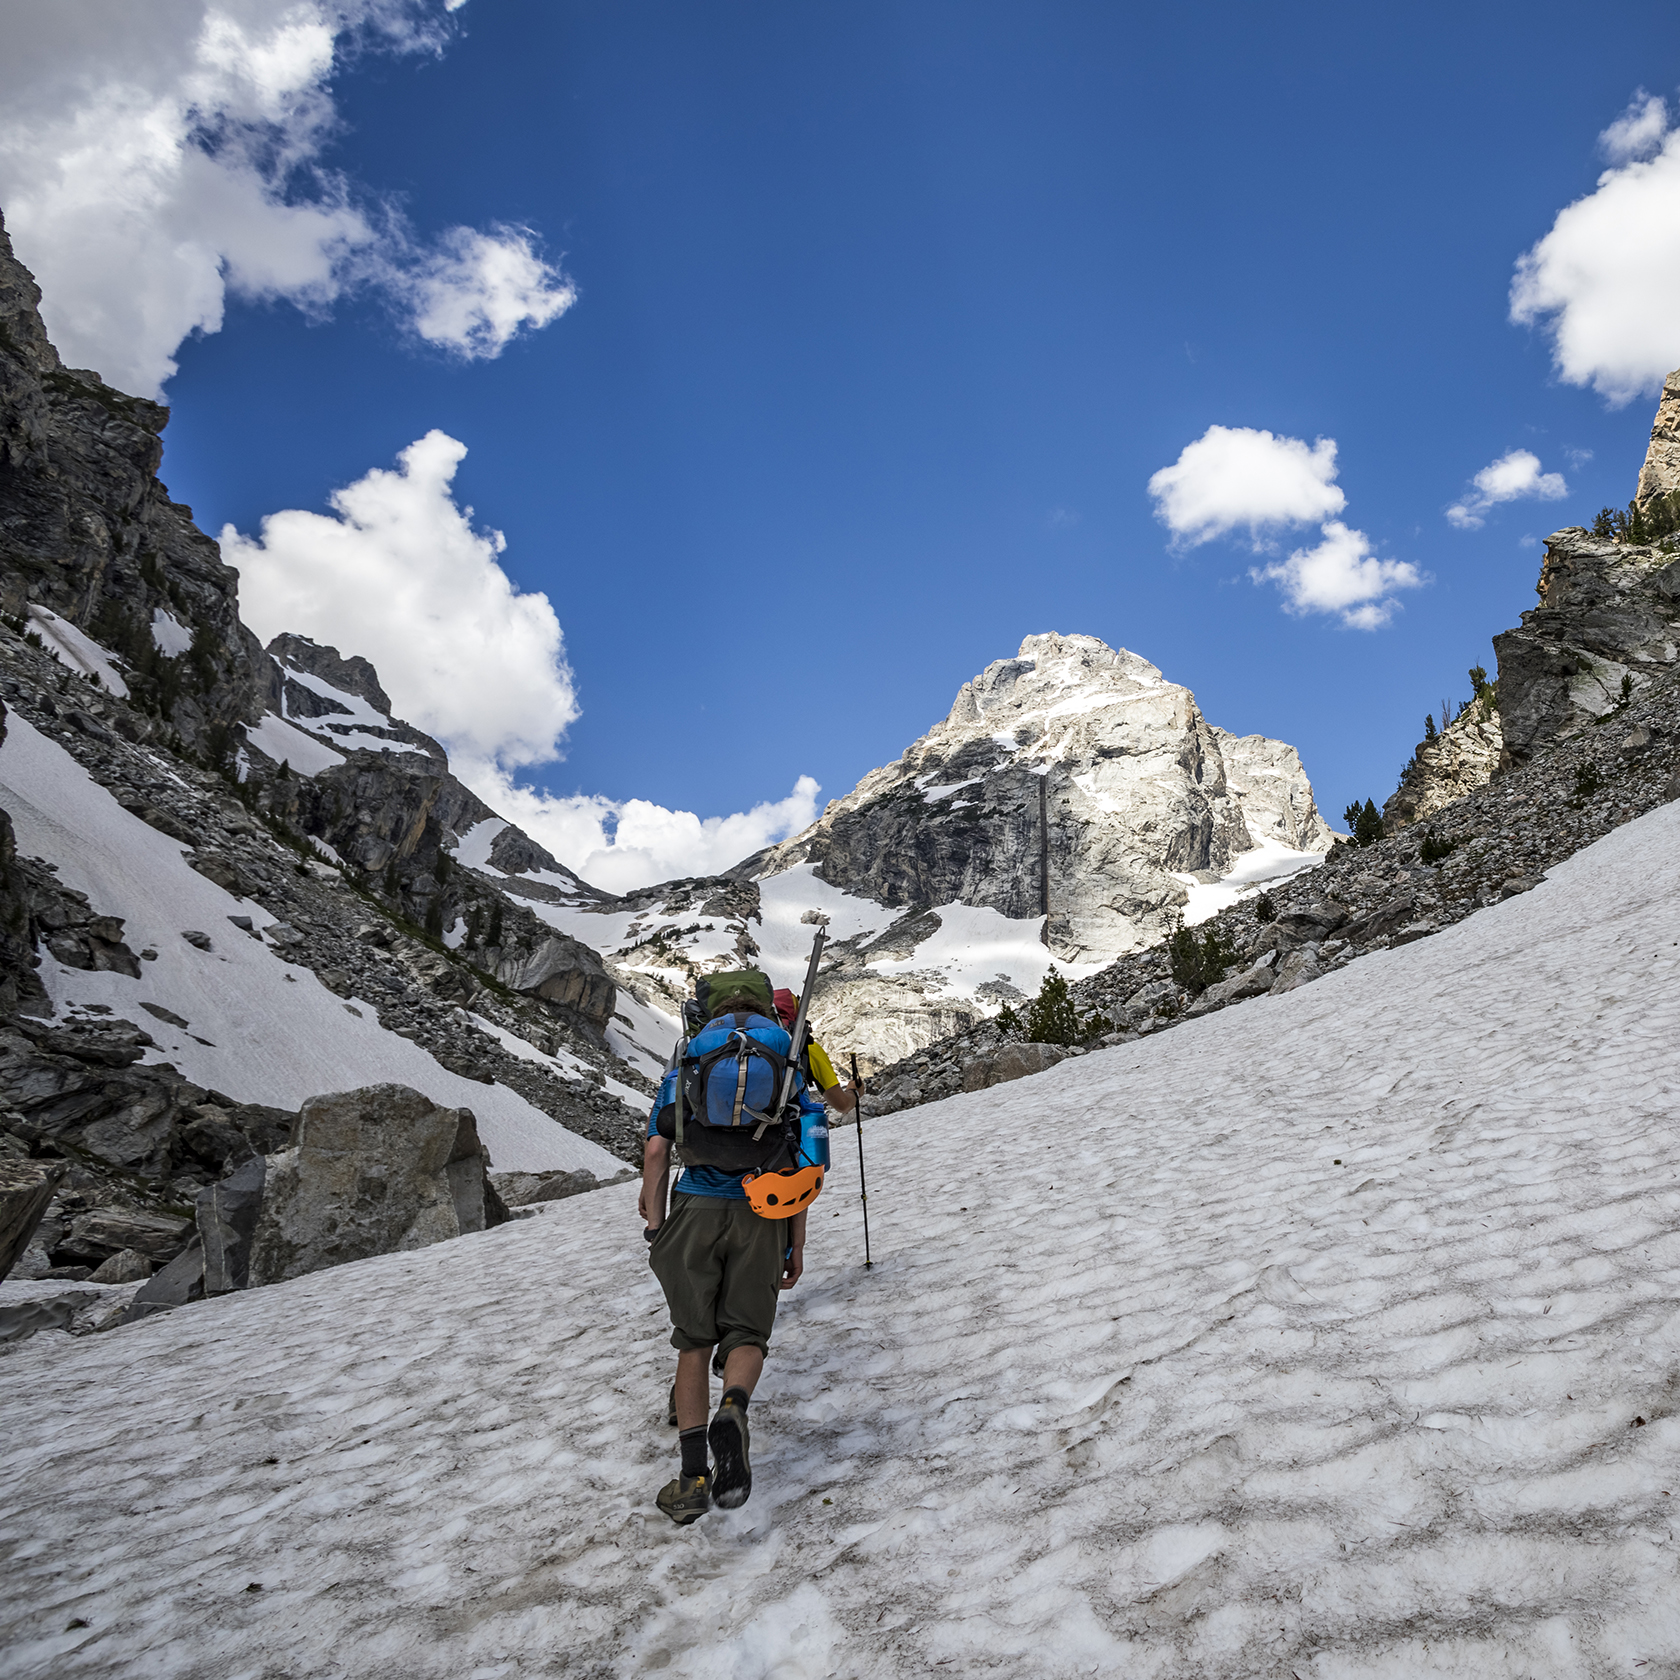 Travelers mountaineering on the Grand Teton trip